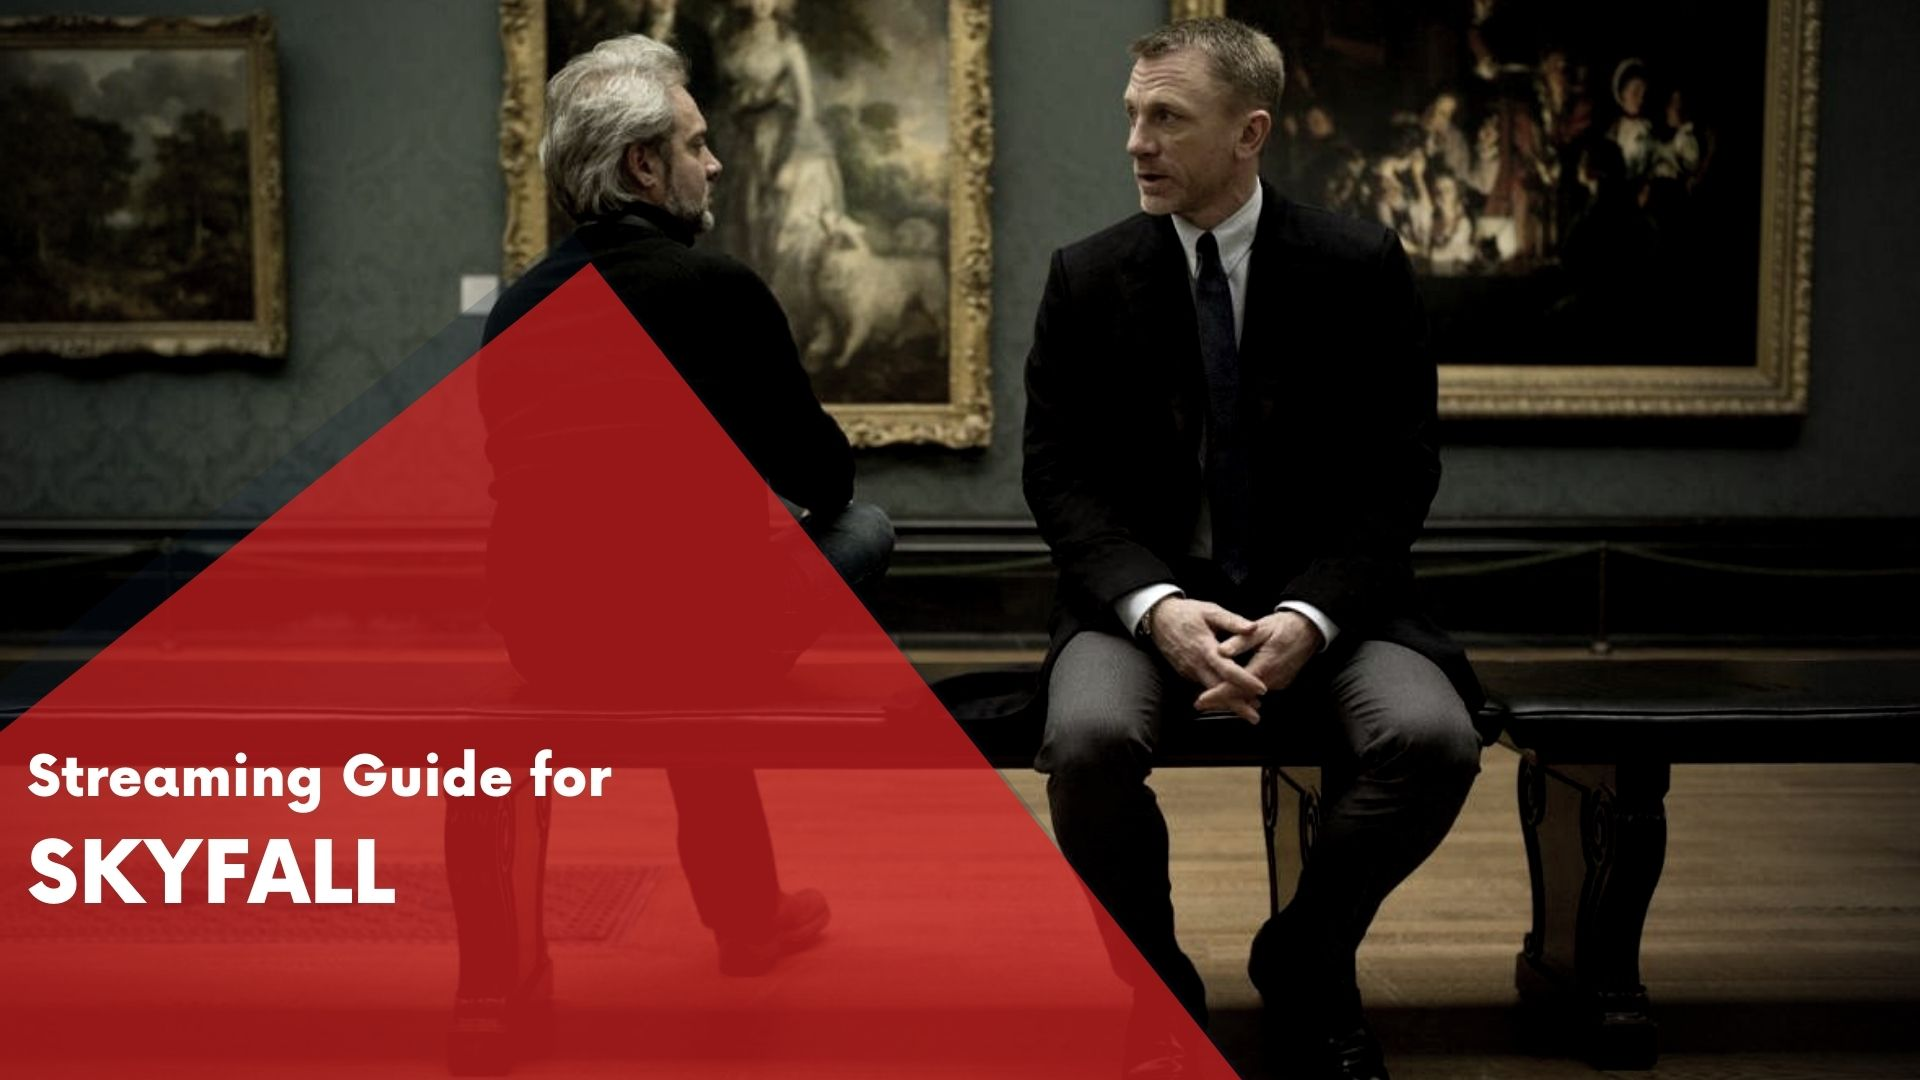 Answering if Skyfall can be watched online on Hulu